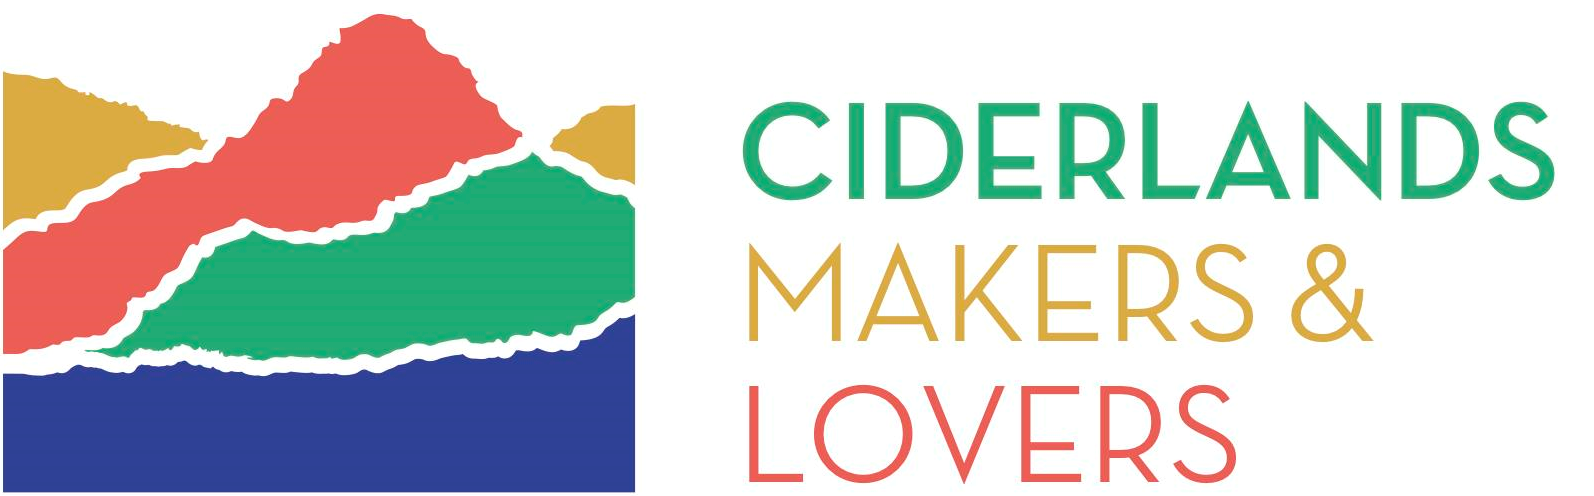 Ciderlands Makers and Lovers